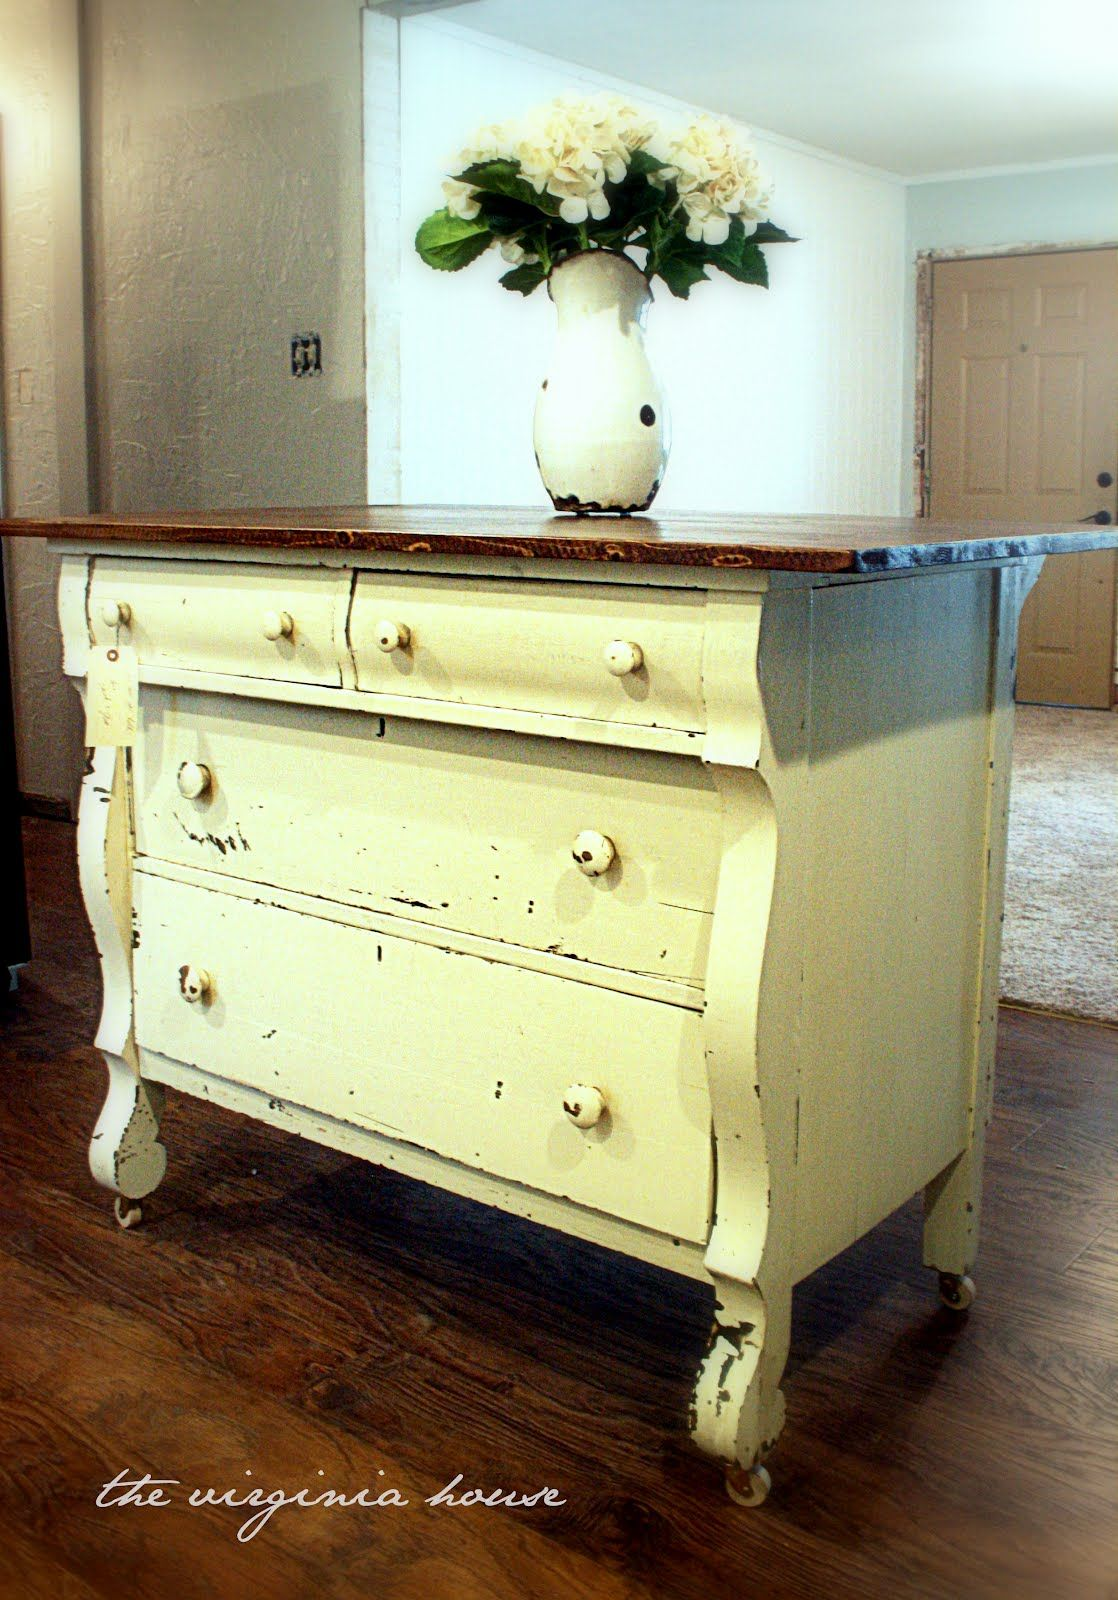 I Have One Of These Never Thought Using This As An Island The Virginia House Old Dresser Kitchen